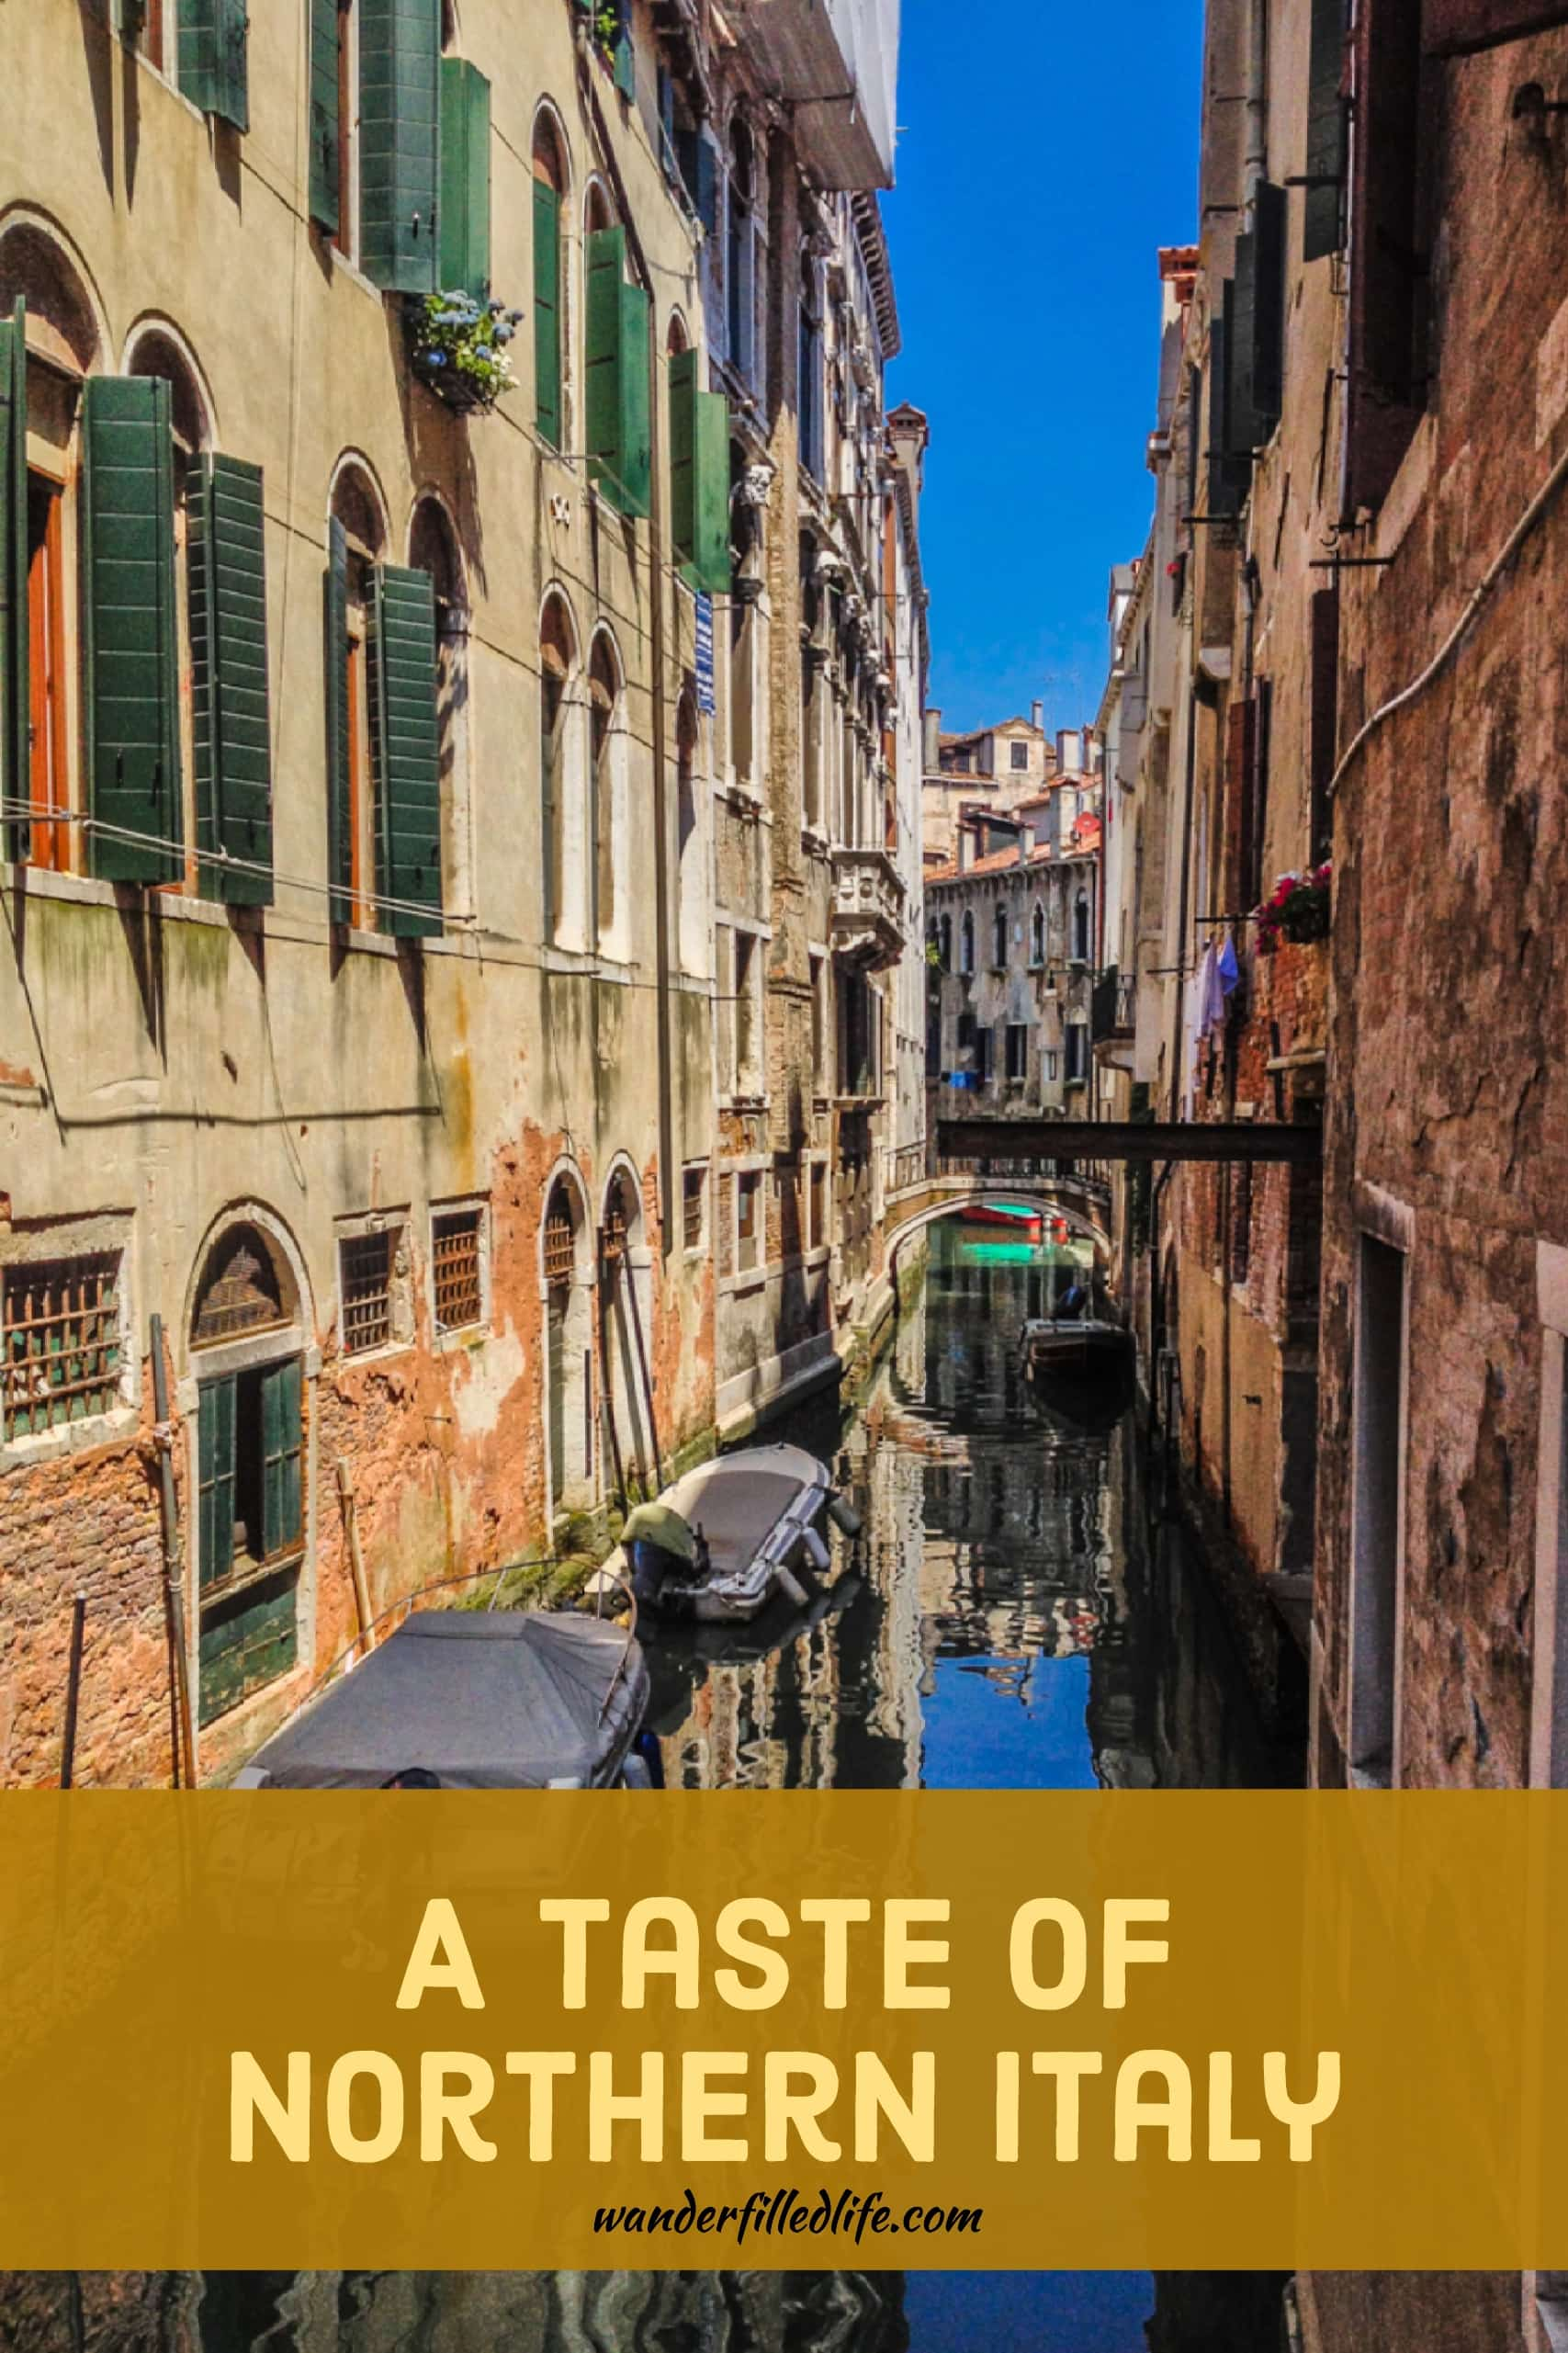 Northern Italy has several wonderful places to visit including Venice, Milan, Lake Como, the Dolomites and Turin. We enjoyed spending several days touring the northern part of the country.